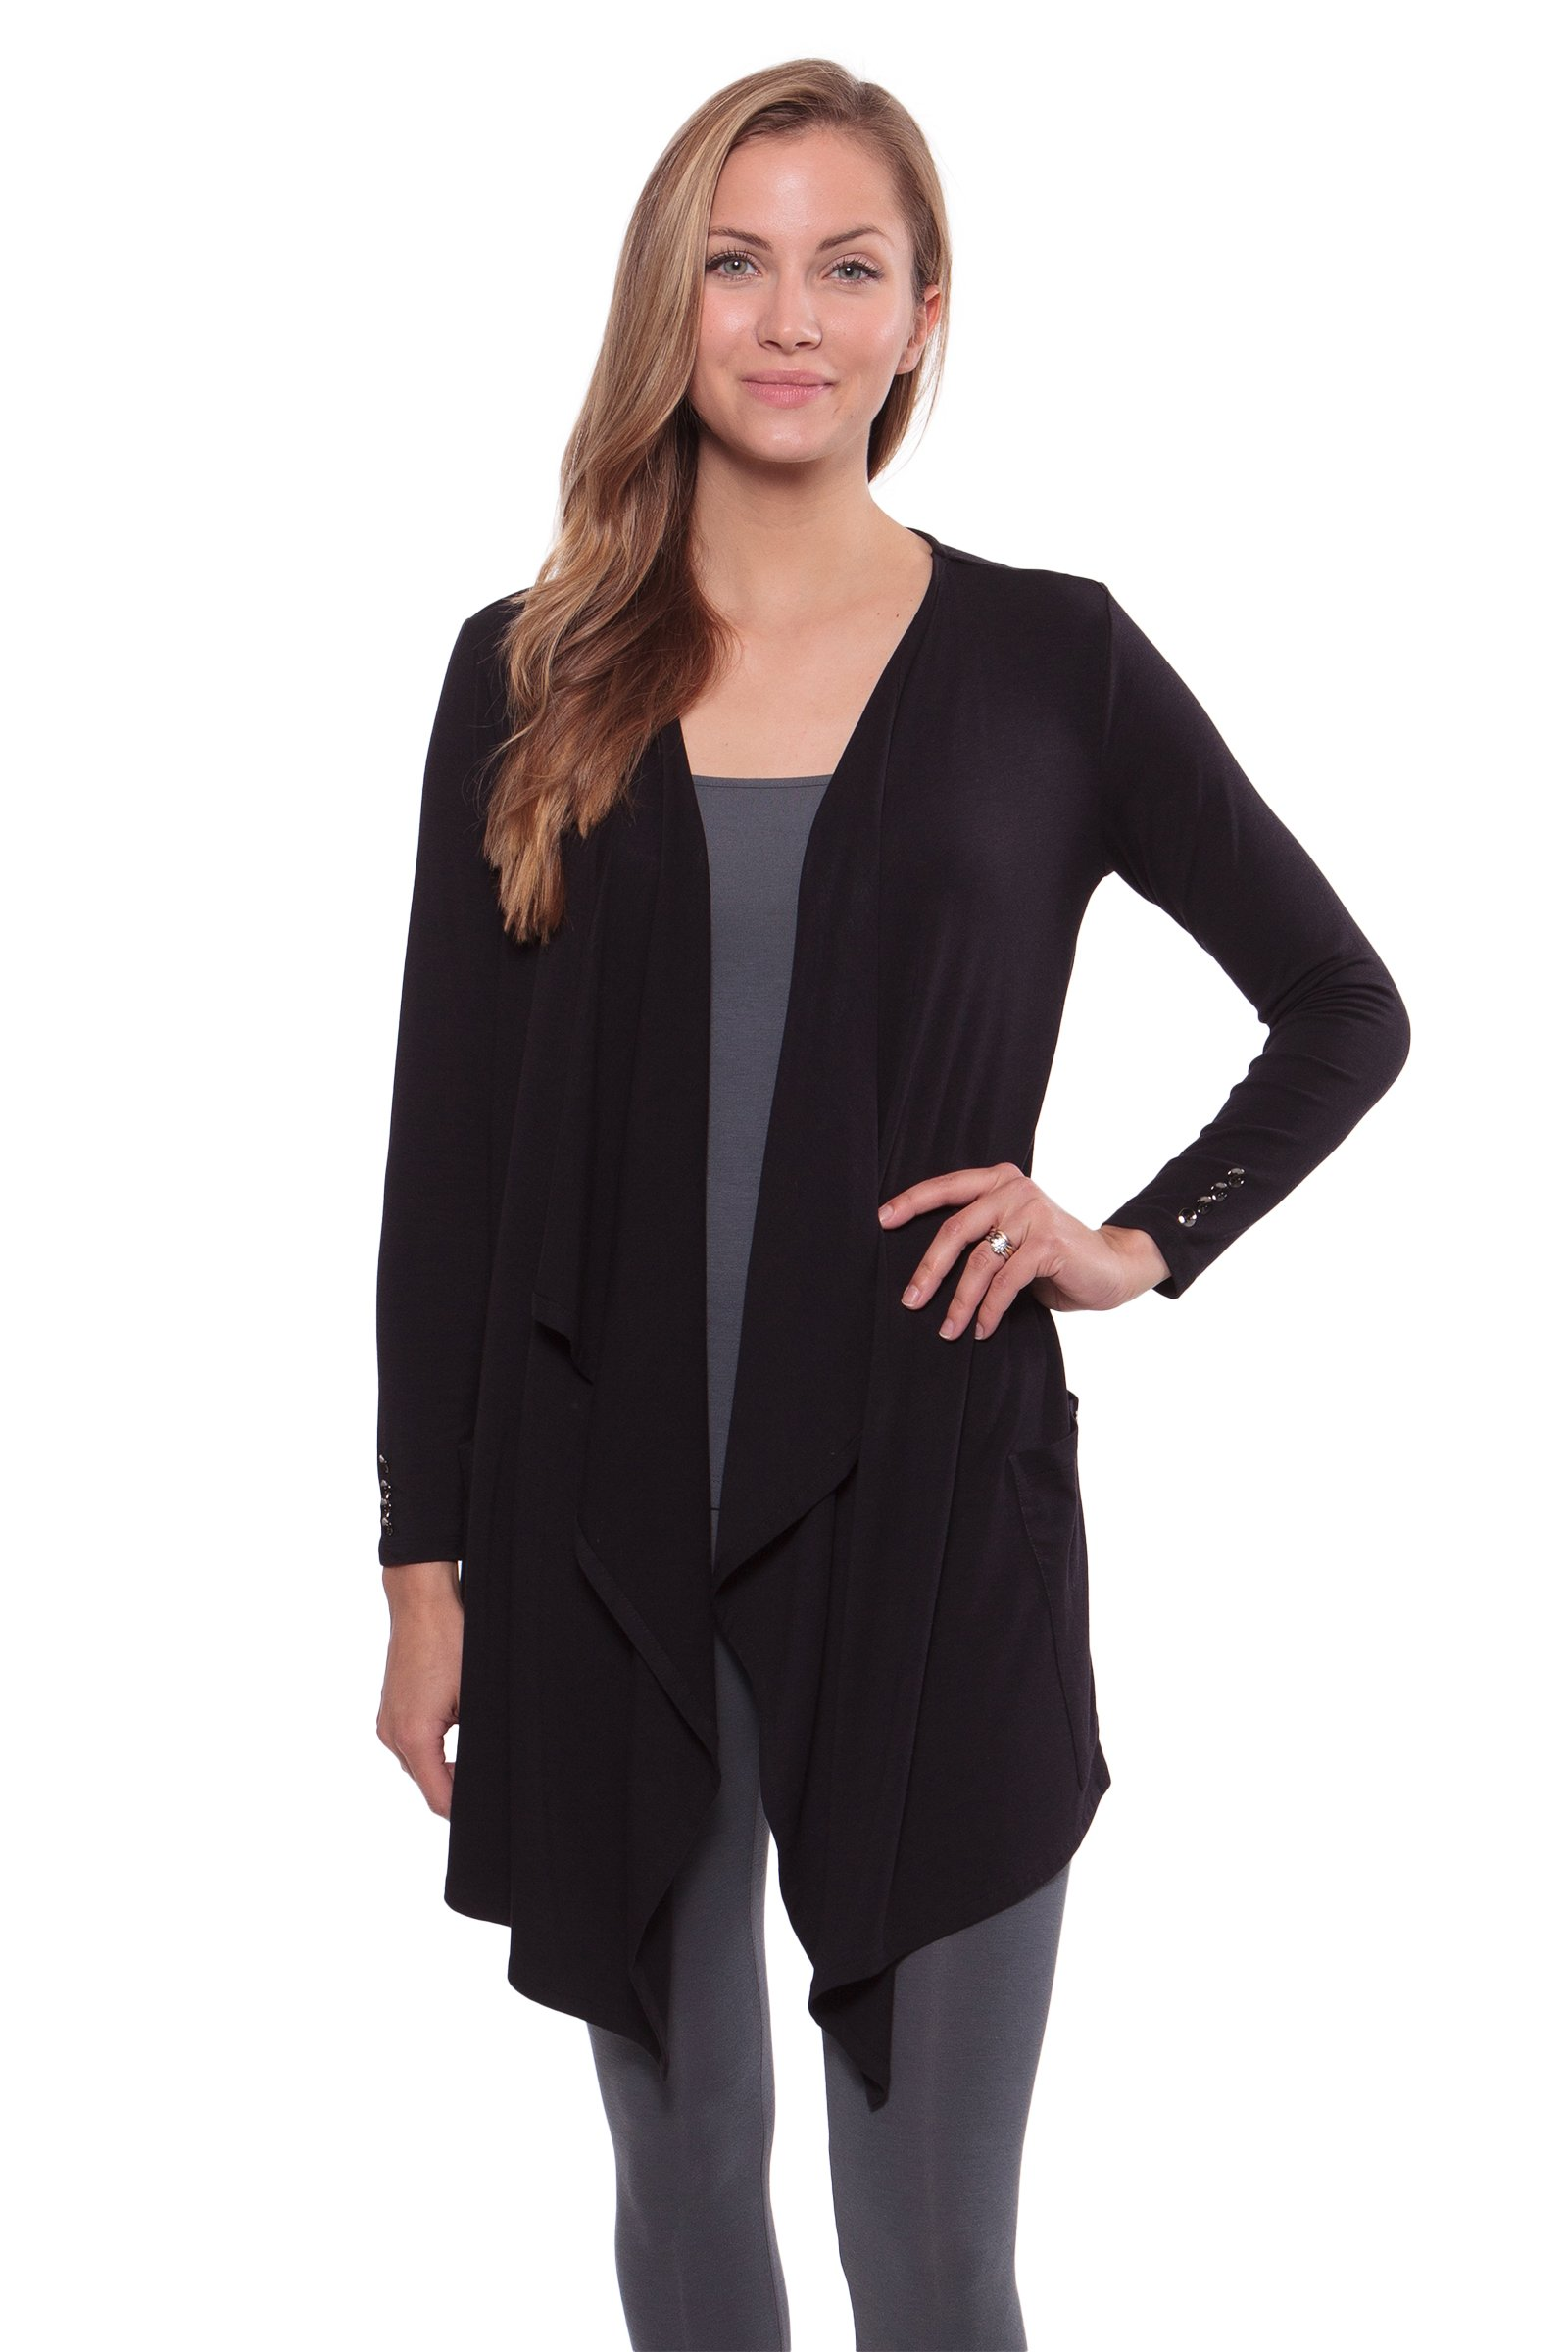 Women's Long Sleeve Draped Cardigan - Stylish Apparel by Texere (Caireen, Black Meteorite, X-Large) Unique Gifts for Women's Birthday WB1002-BMT-XL